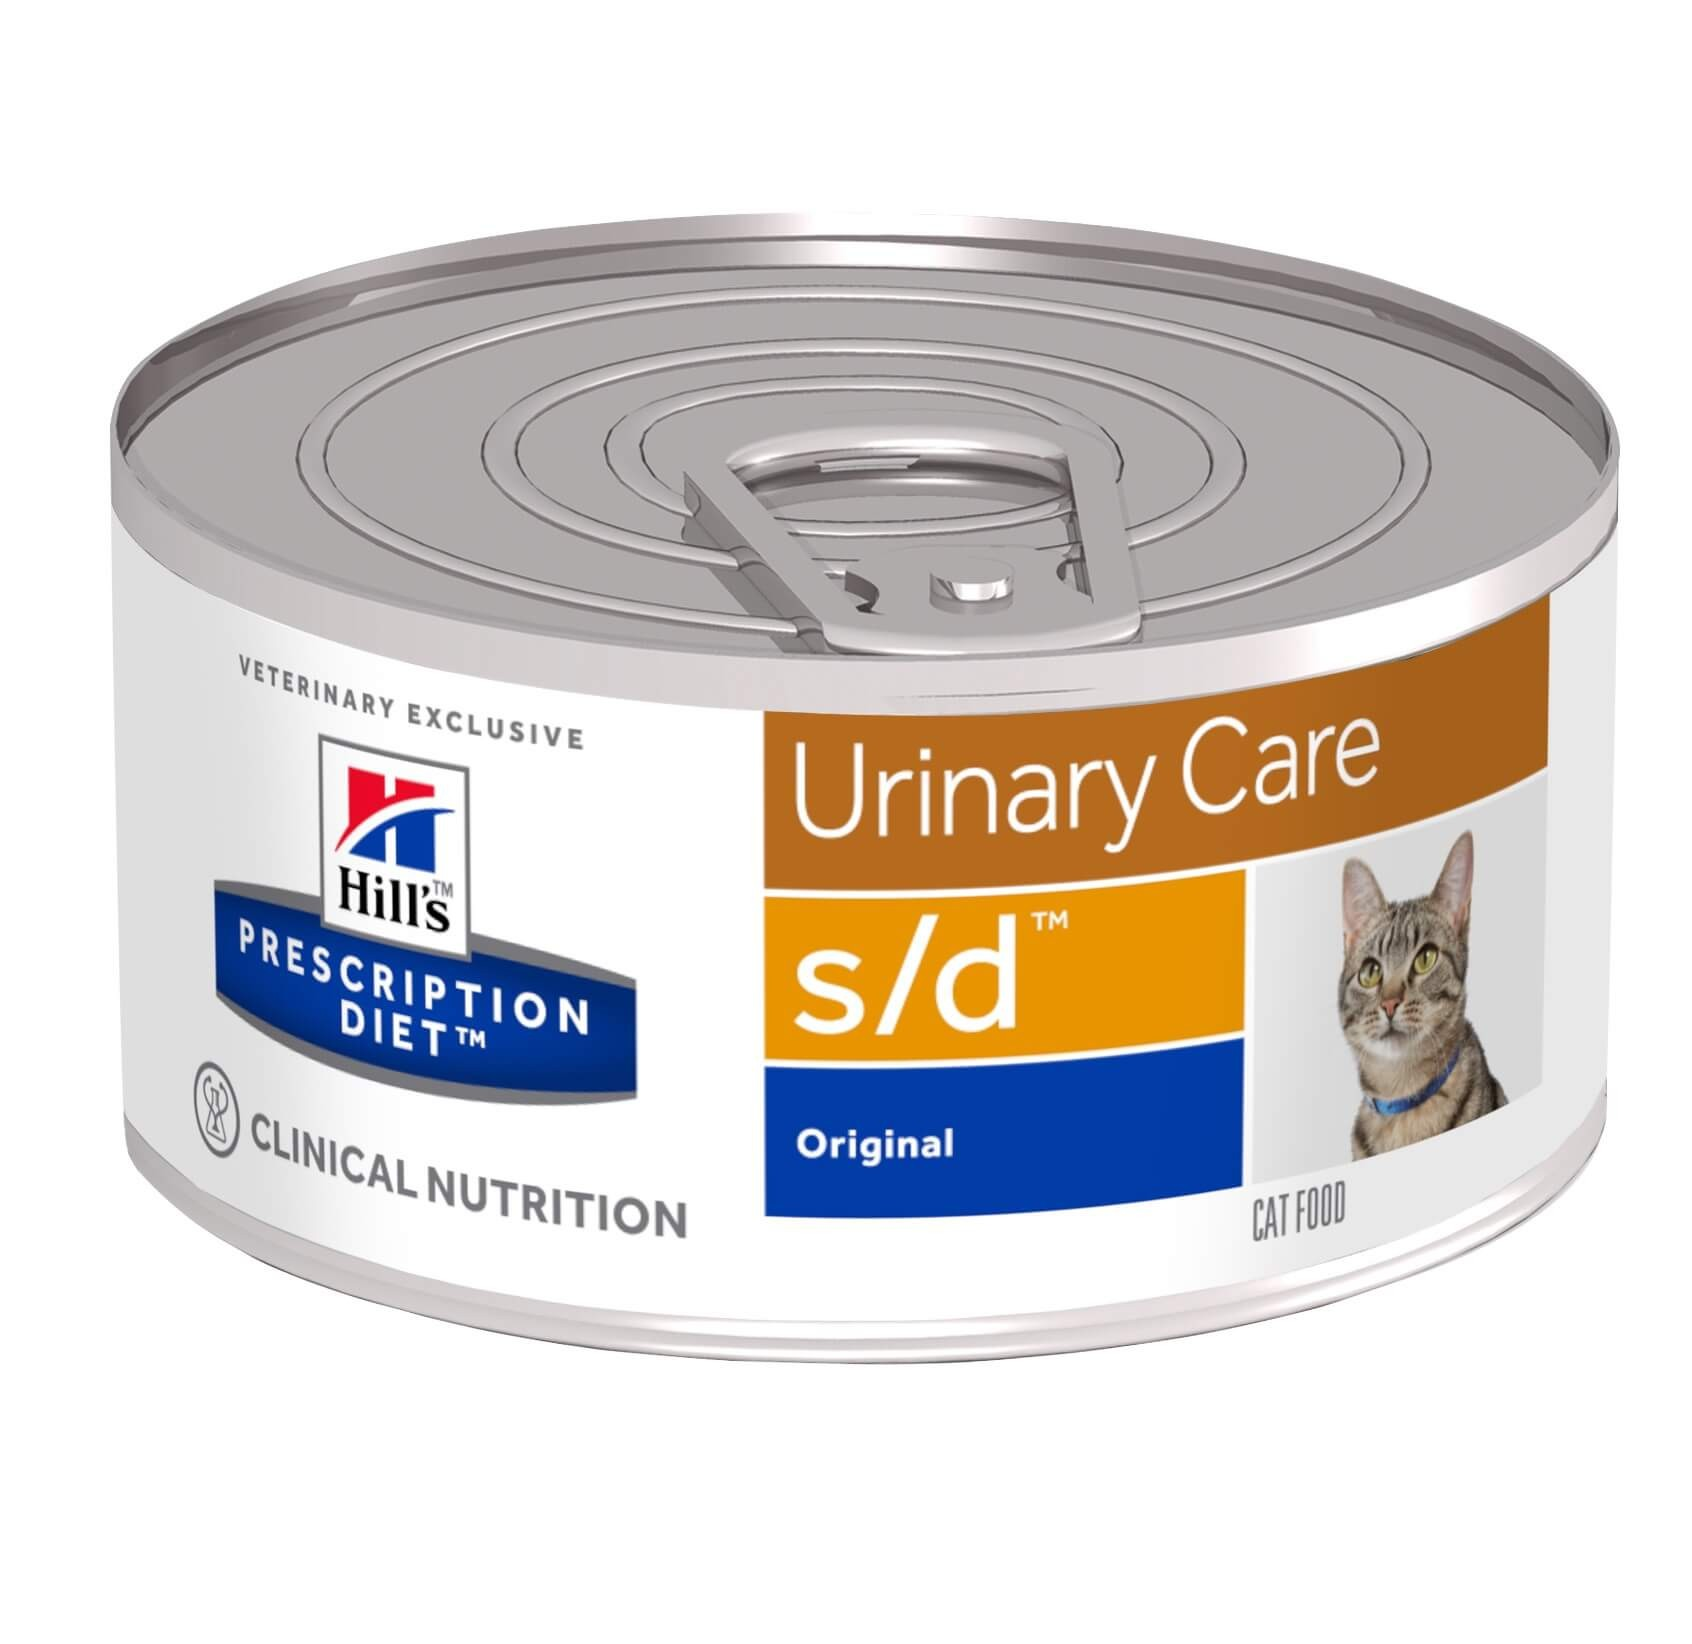 Hill's Prescription Diet S/D Boite 156g Chat